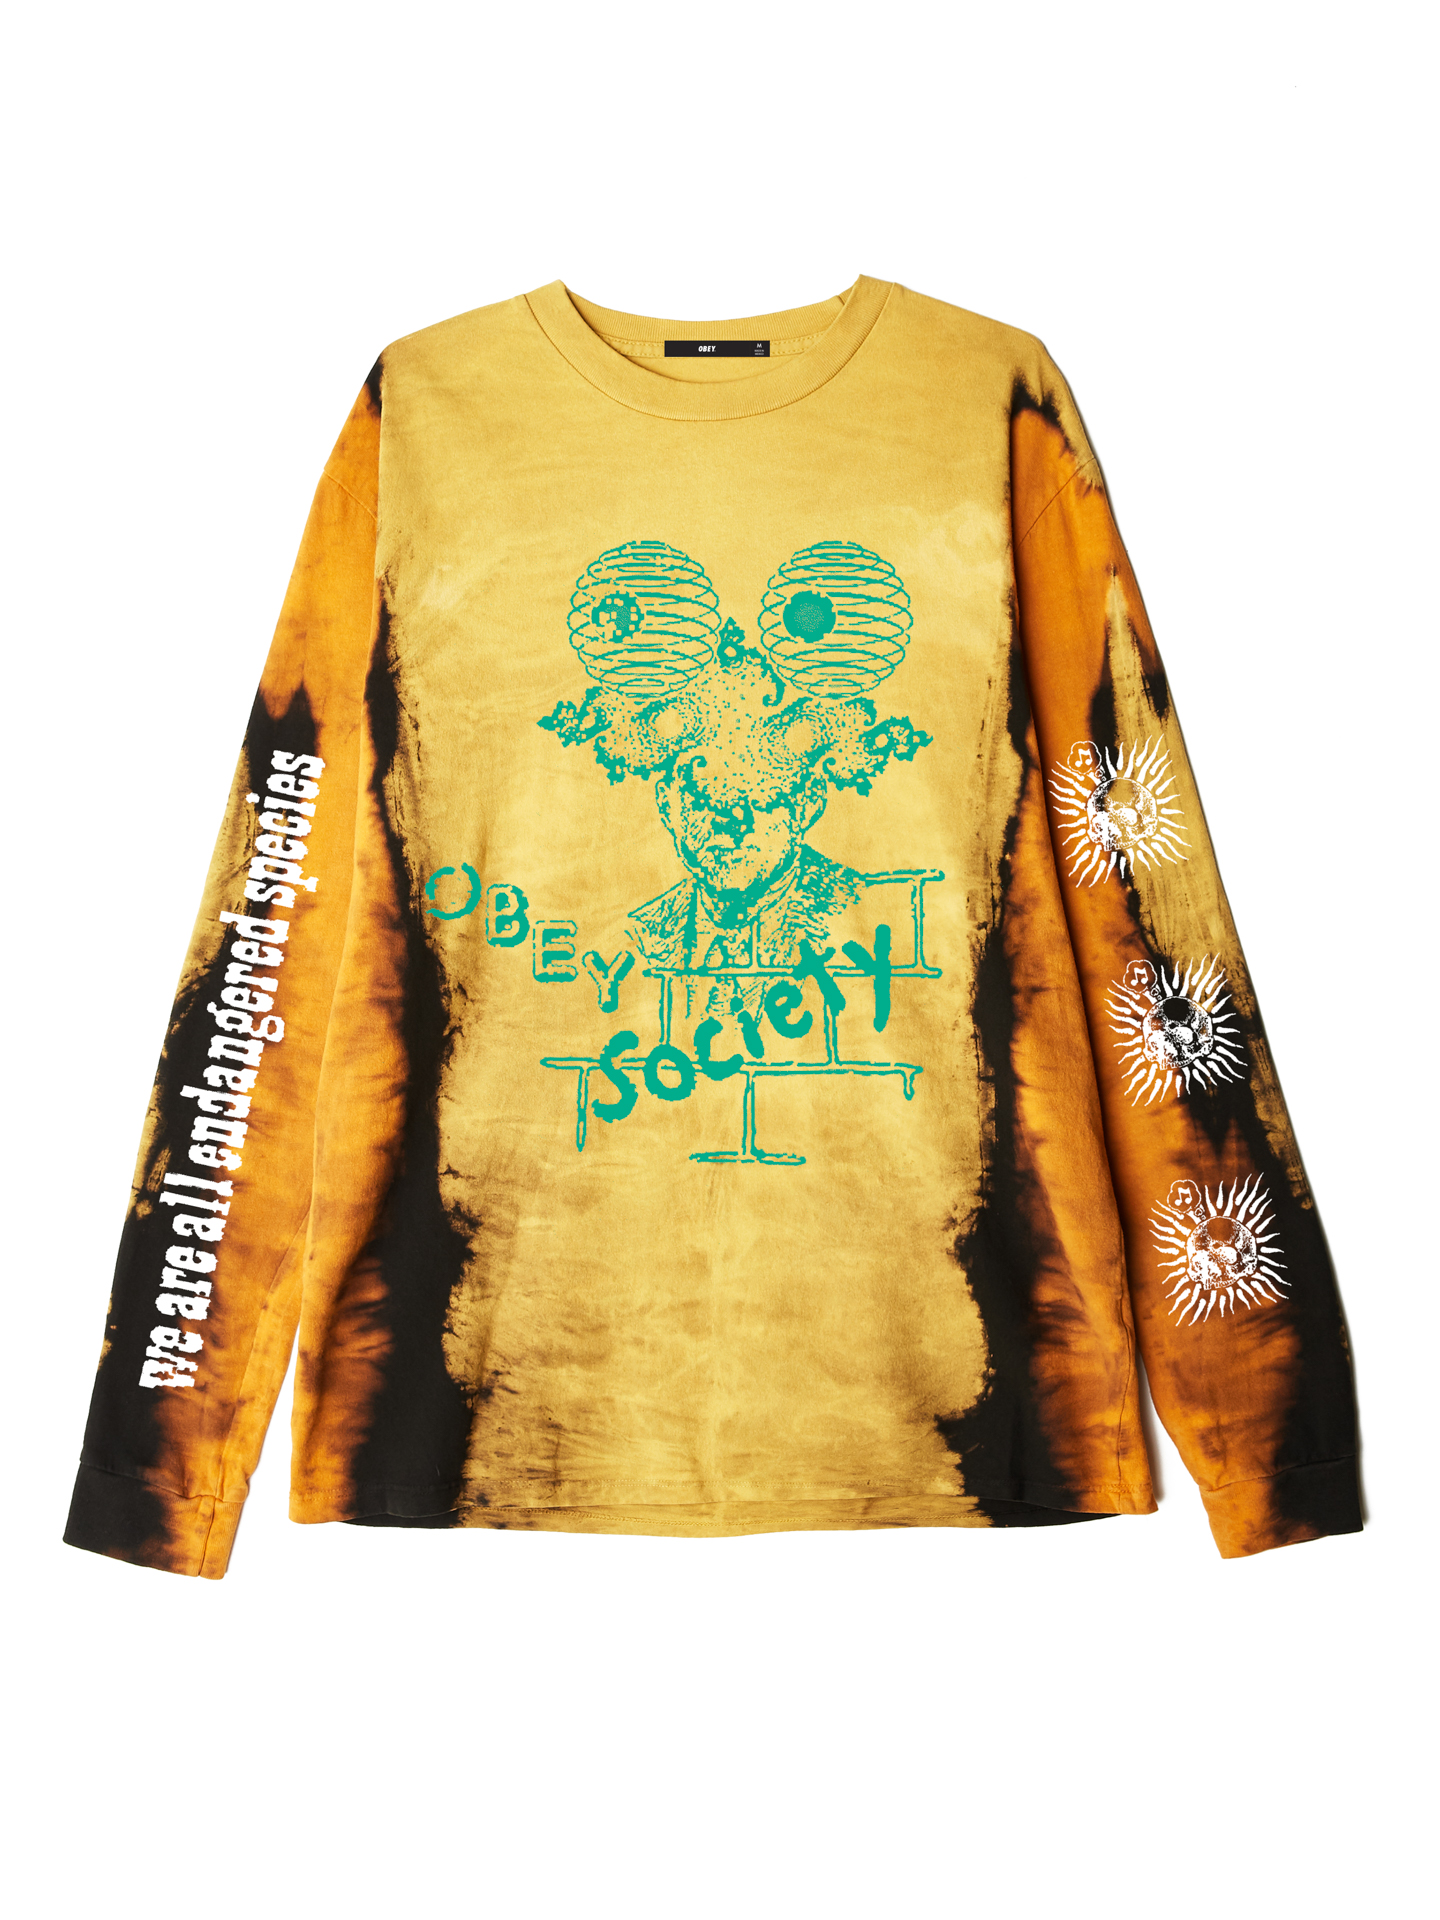 394f9602a725 OBEY Society Vertical Tie Dye Long Sleeve T-Shirt - Obey Clothing UK